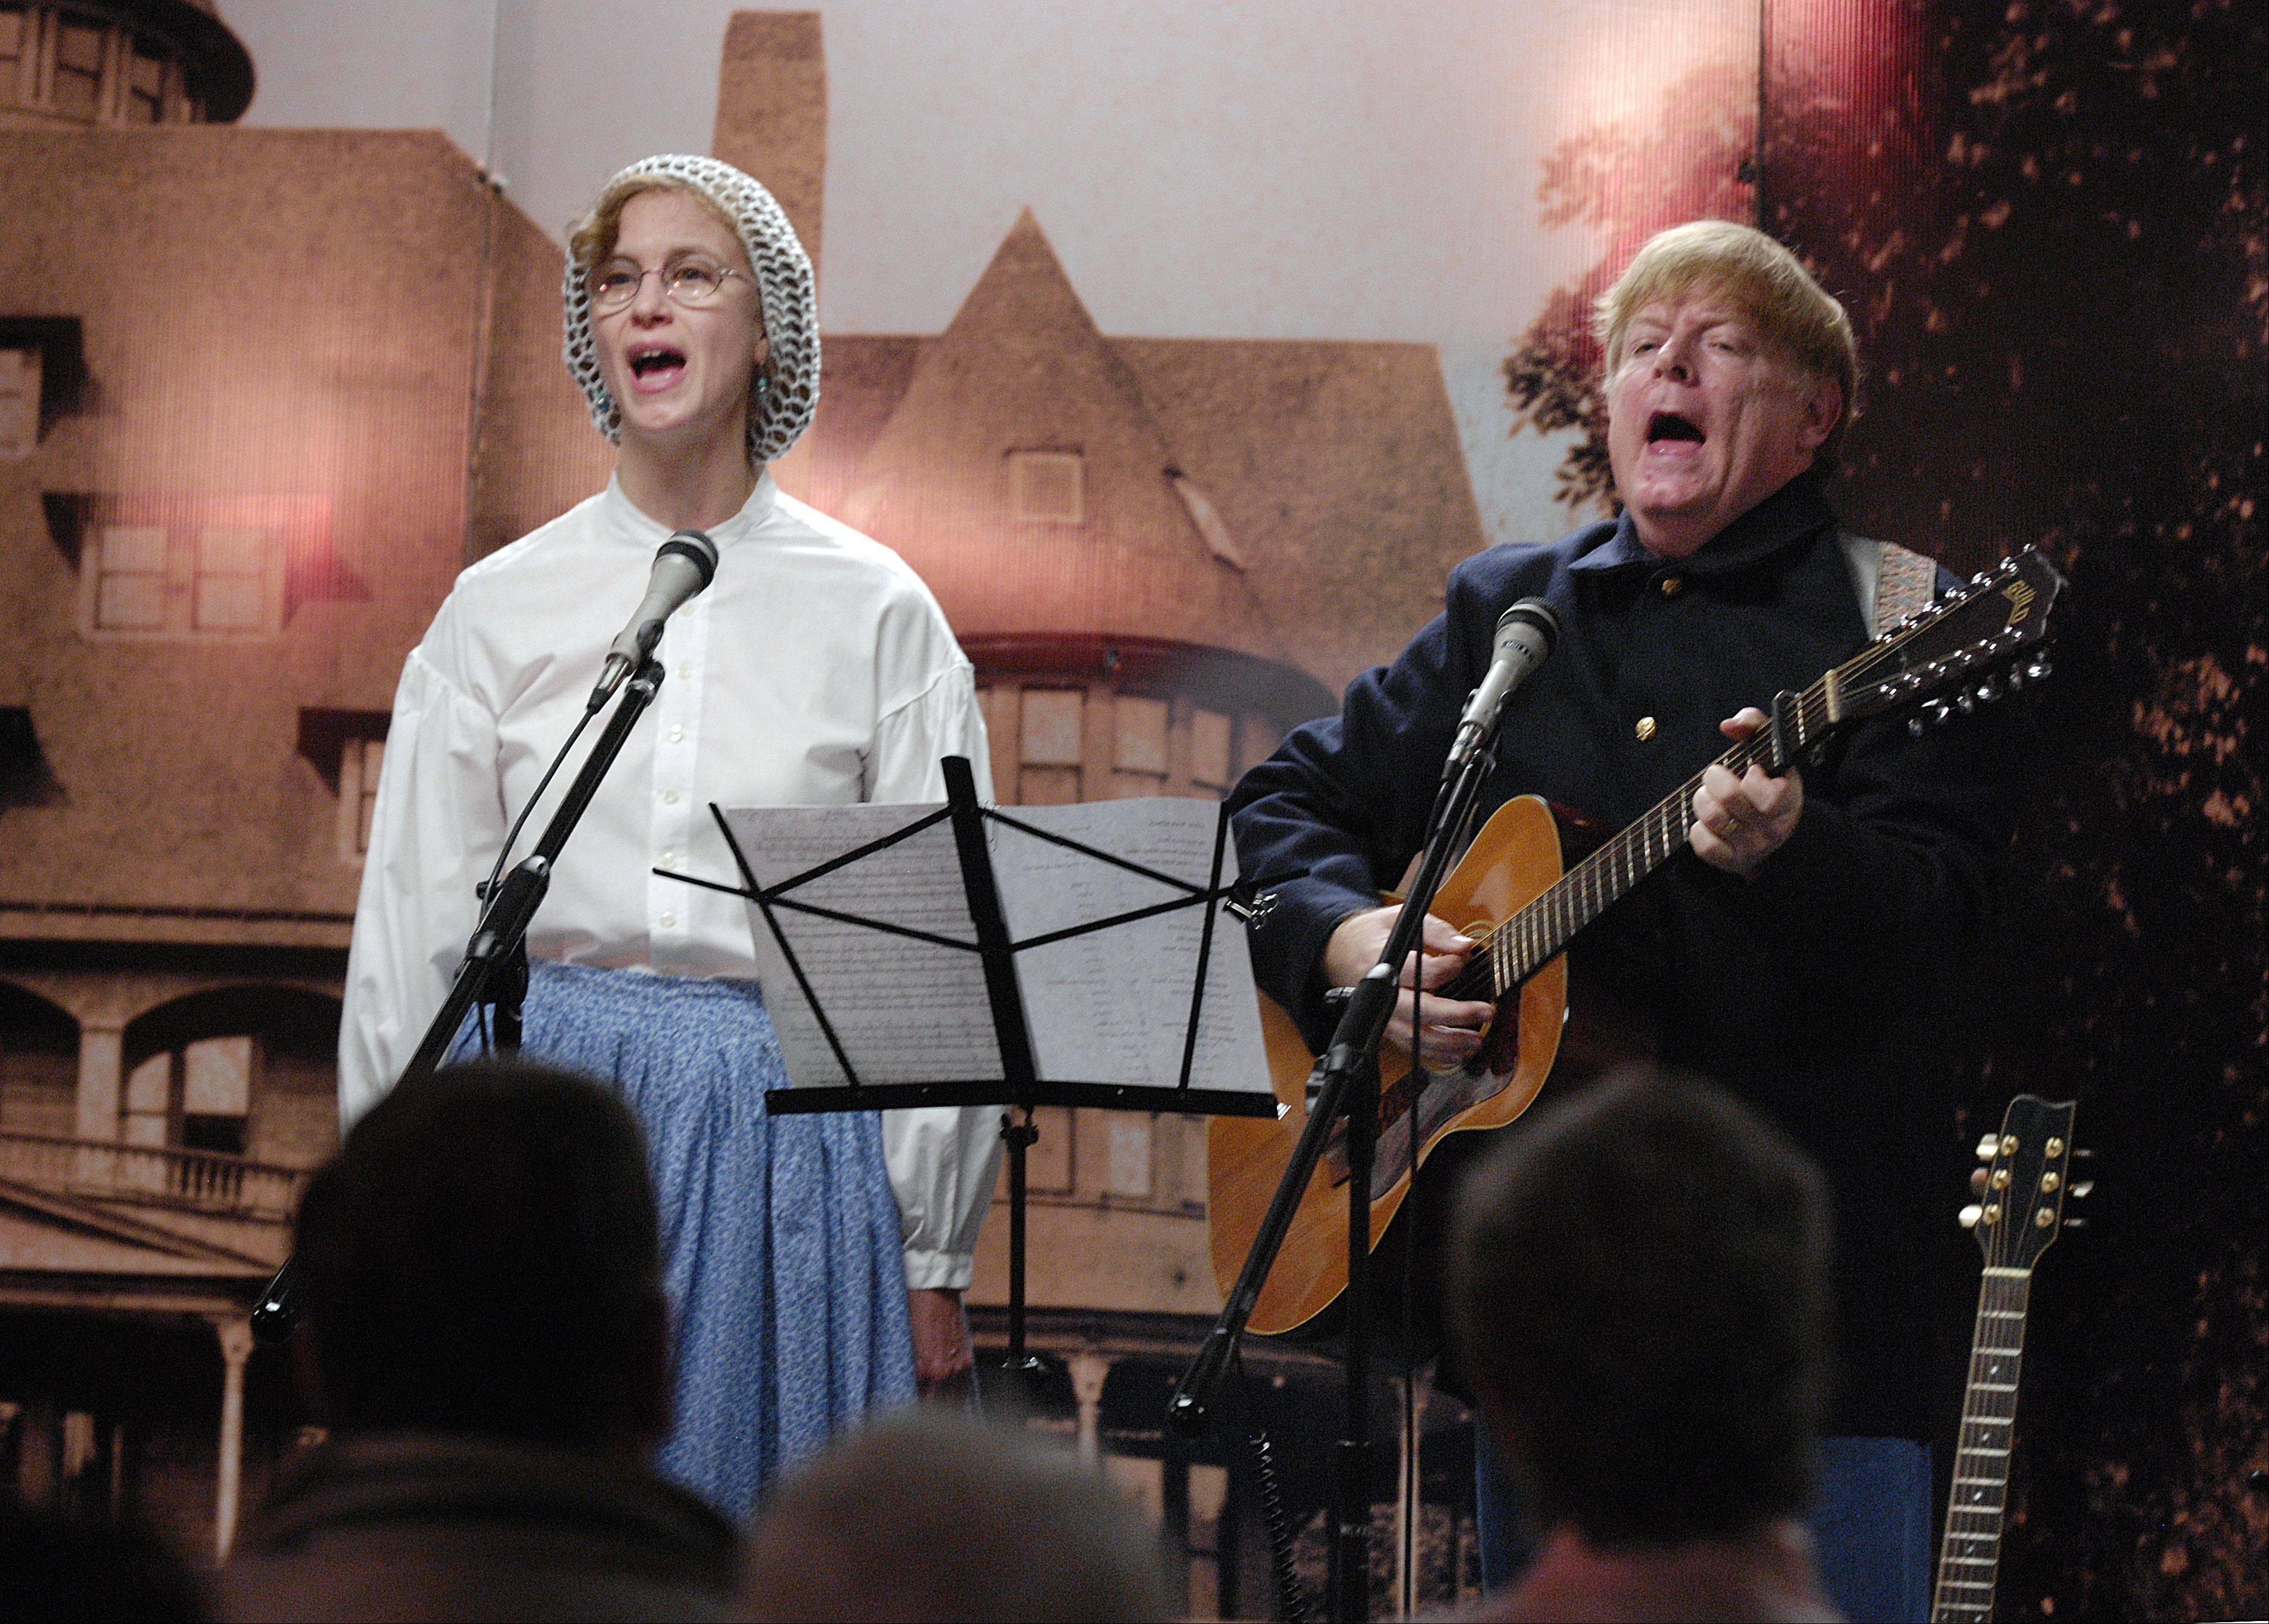 History Singers Kathryn and John Atwood perform songs from the Civil War at the Glen Ellyn Historical Society History Center Sunday. It's one of several special Civil War programs the historical society has planned for the war's 150th anniversary.